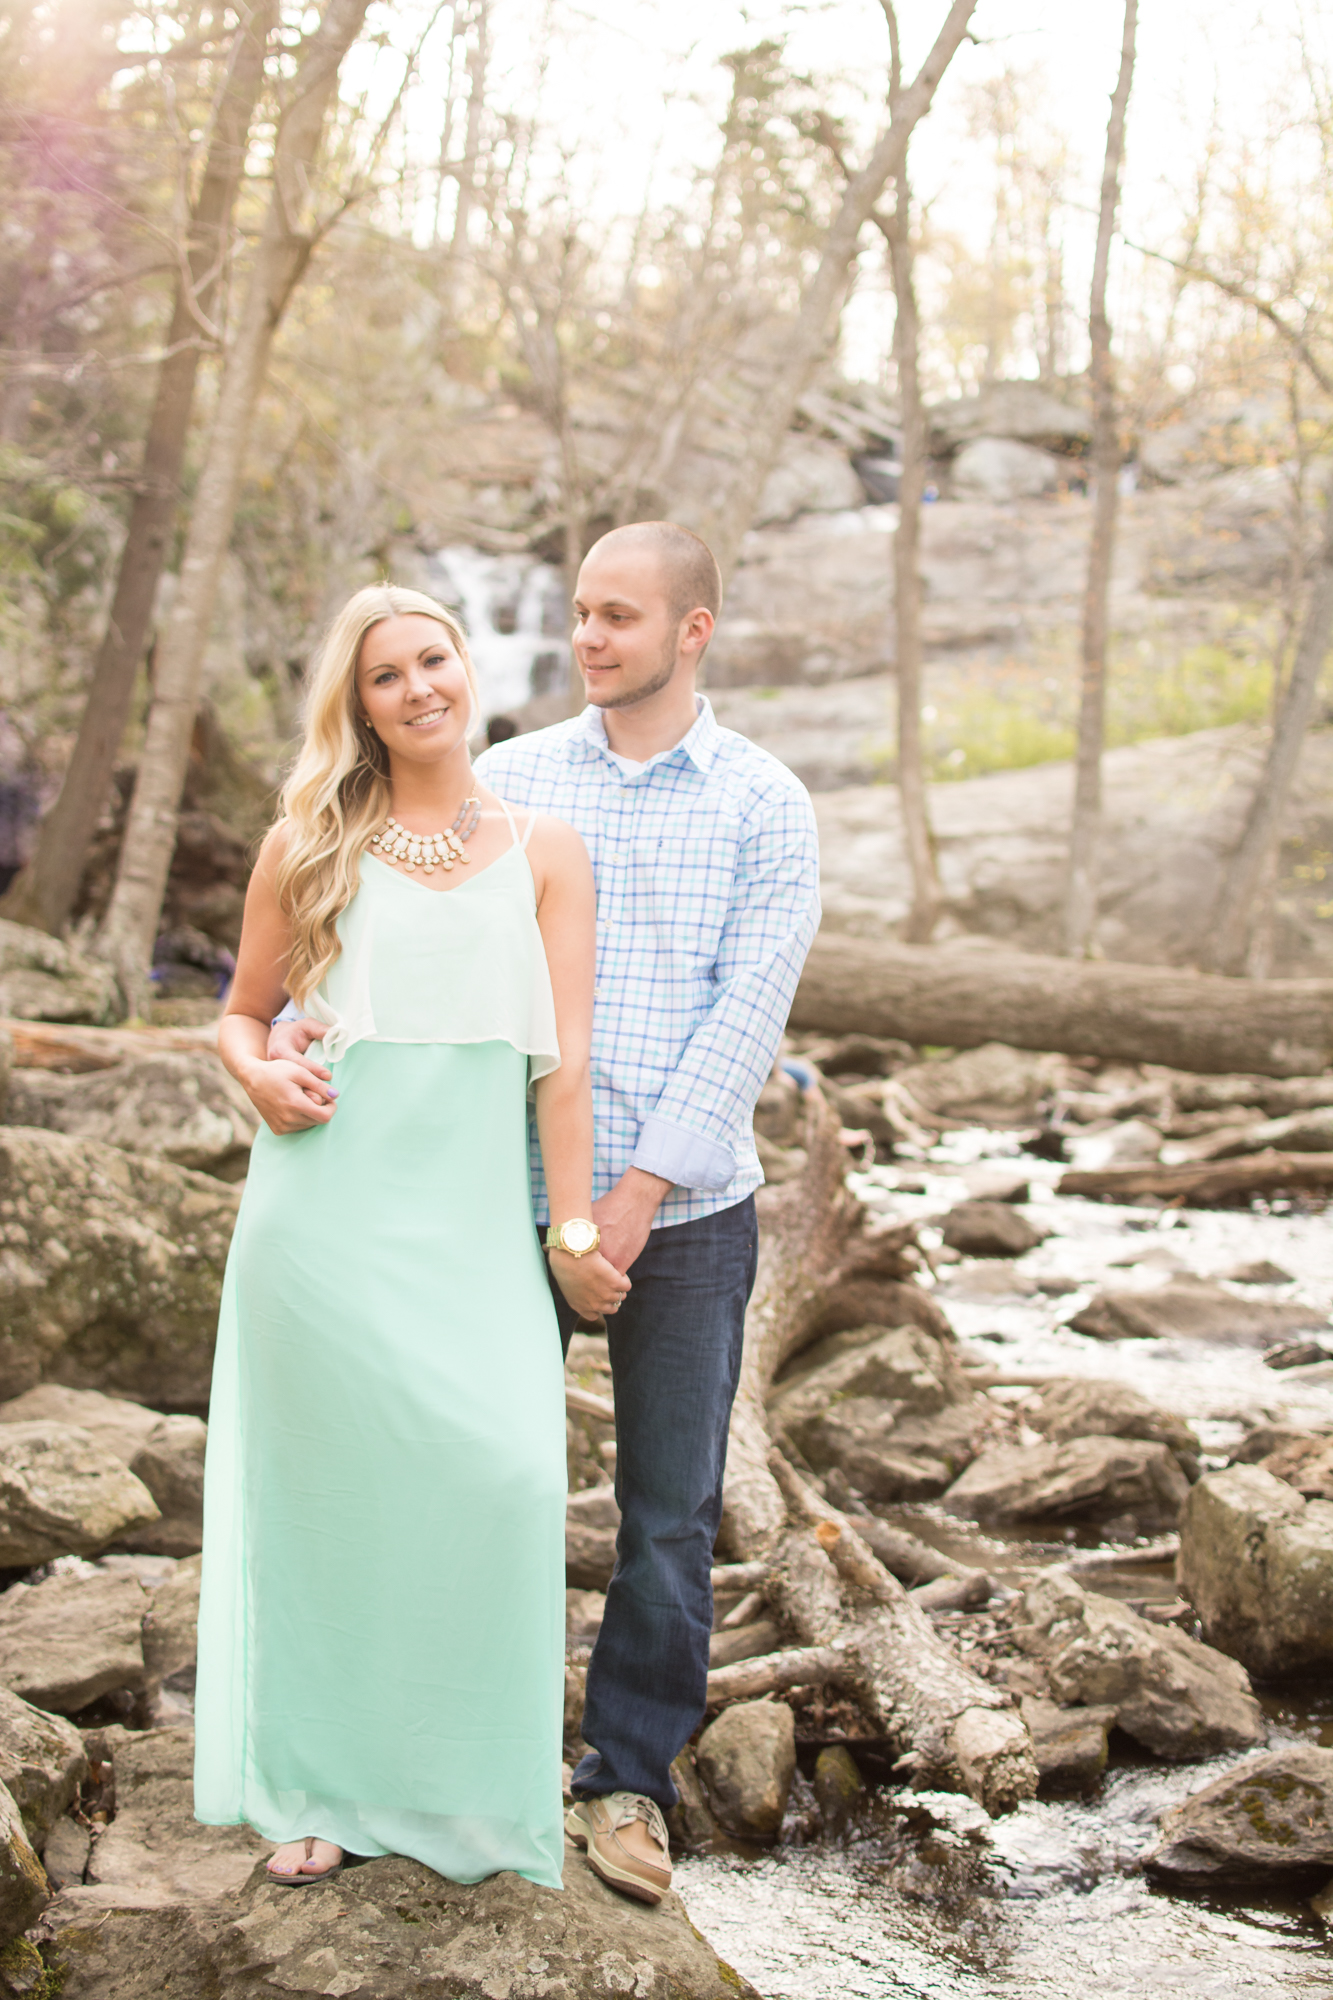 cunningham falls engagement session photo couple